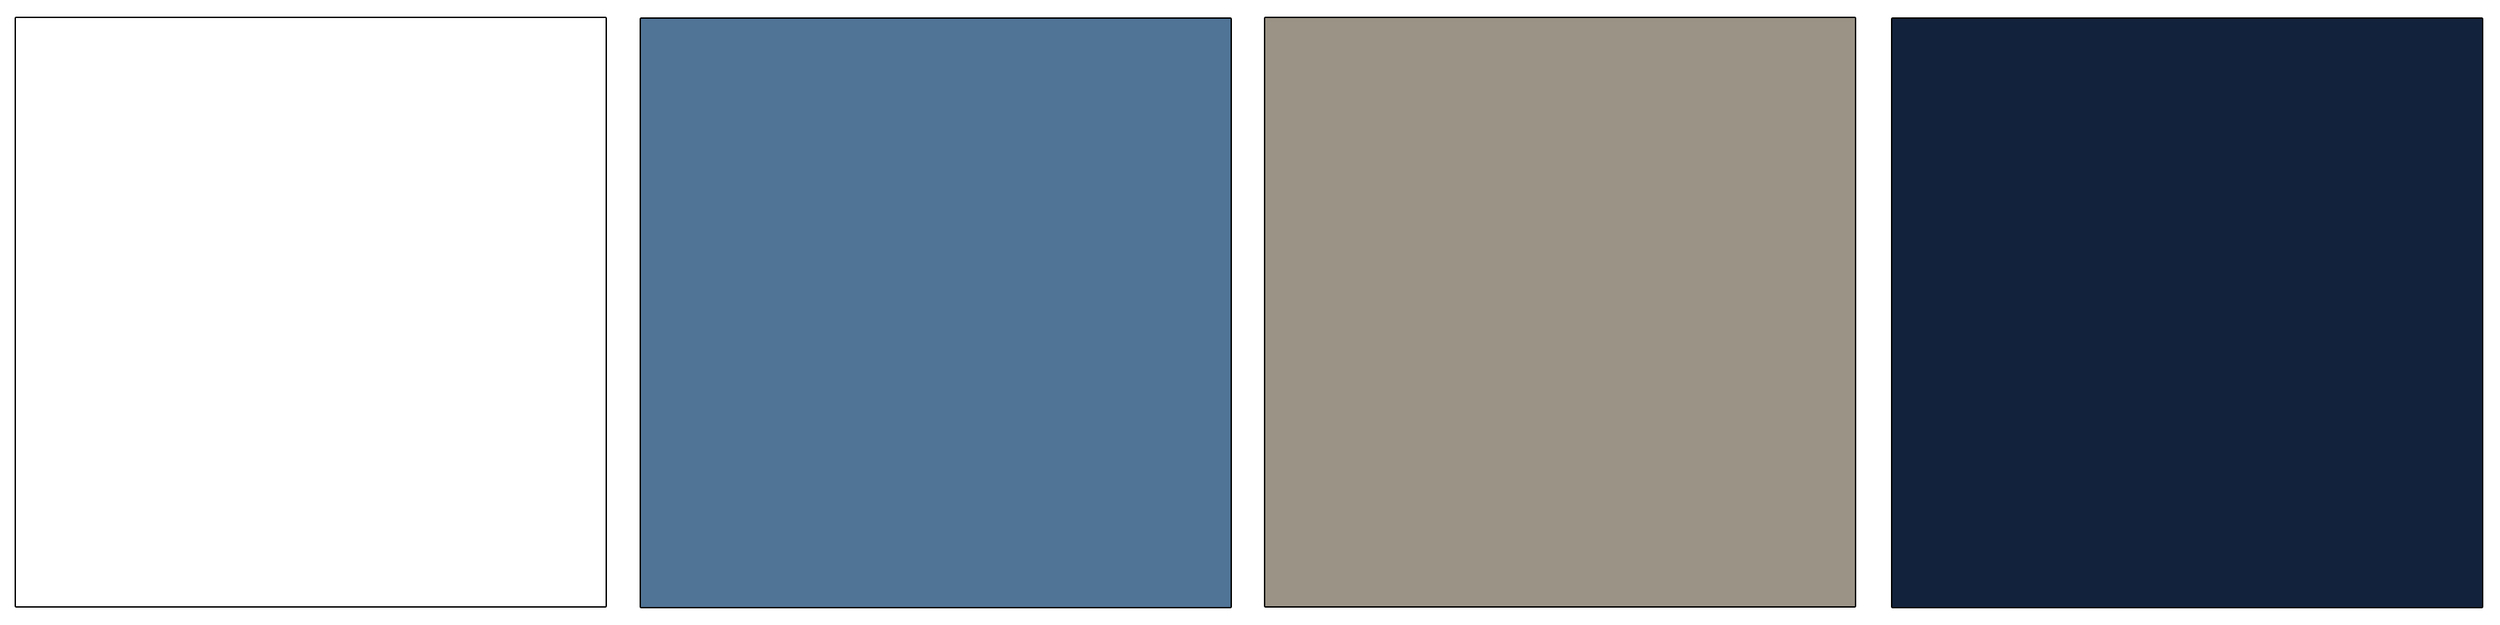 White, Denim, Tan and Navy make a great colour palette, especially if you have boys... avoid bold patterns and large logos, these can be distracting and we want you to be the stars of your  Family Portraits.